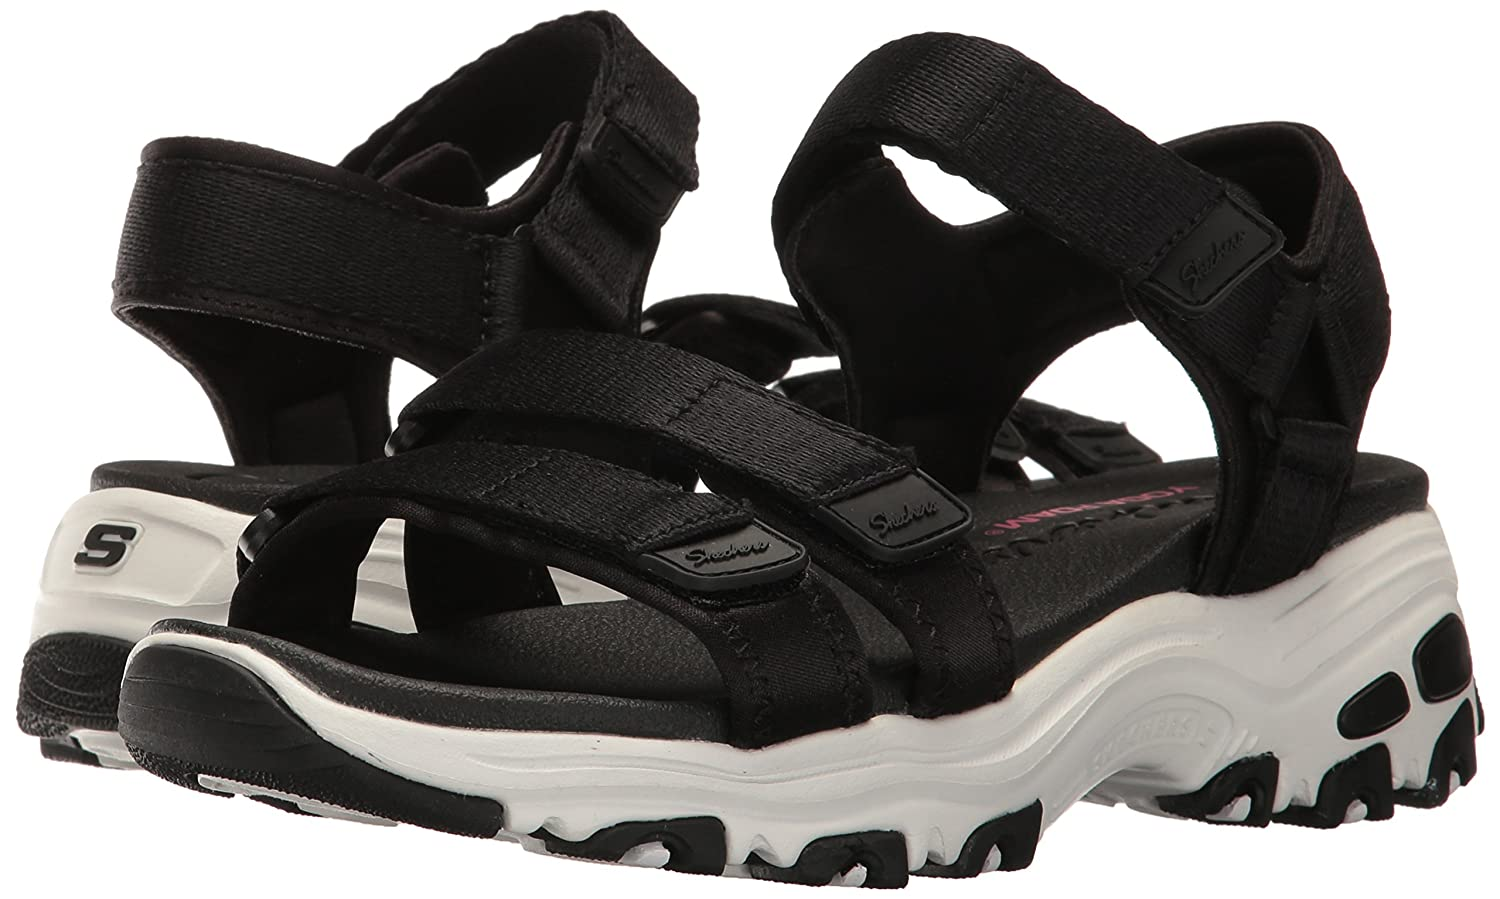 Skechers Cali Women's D'Lites-Fresh Catch Wedge Sandal B01MSWN7I4 11 B(M) US|Black